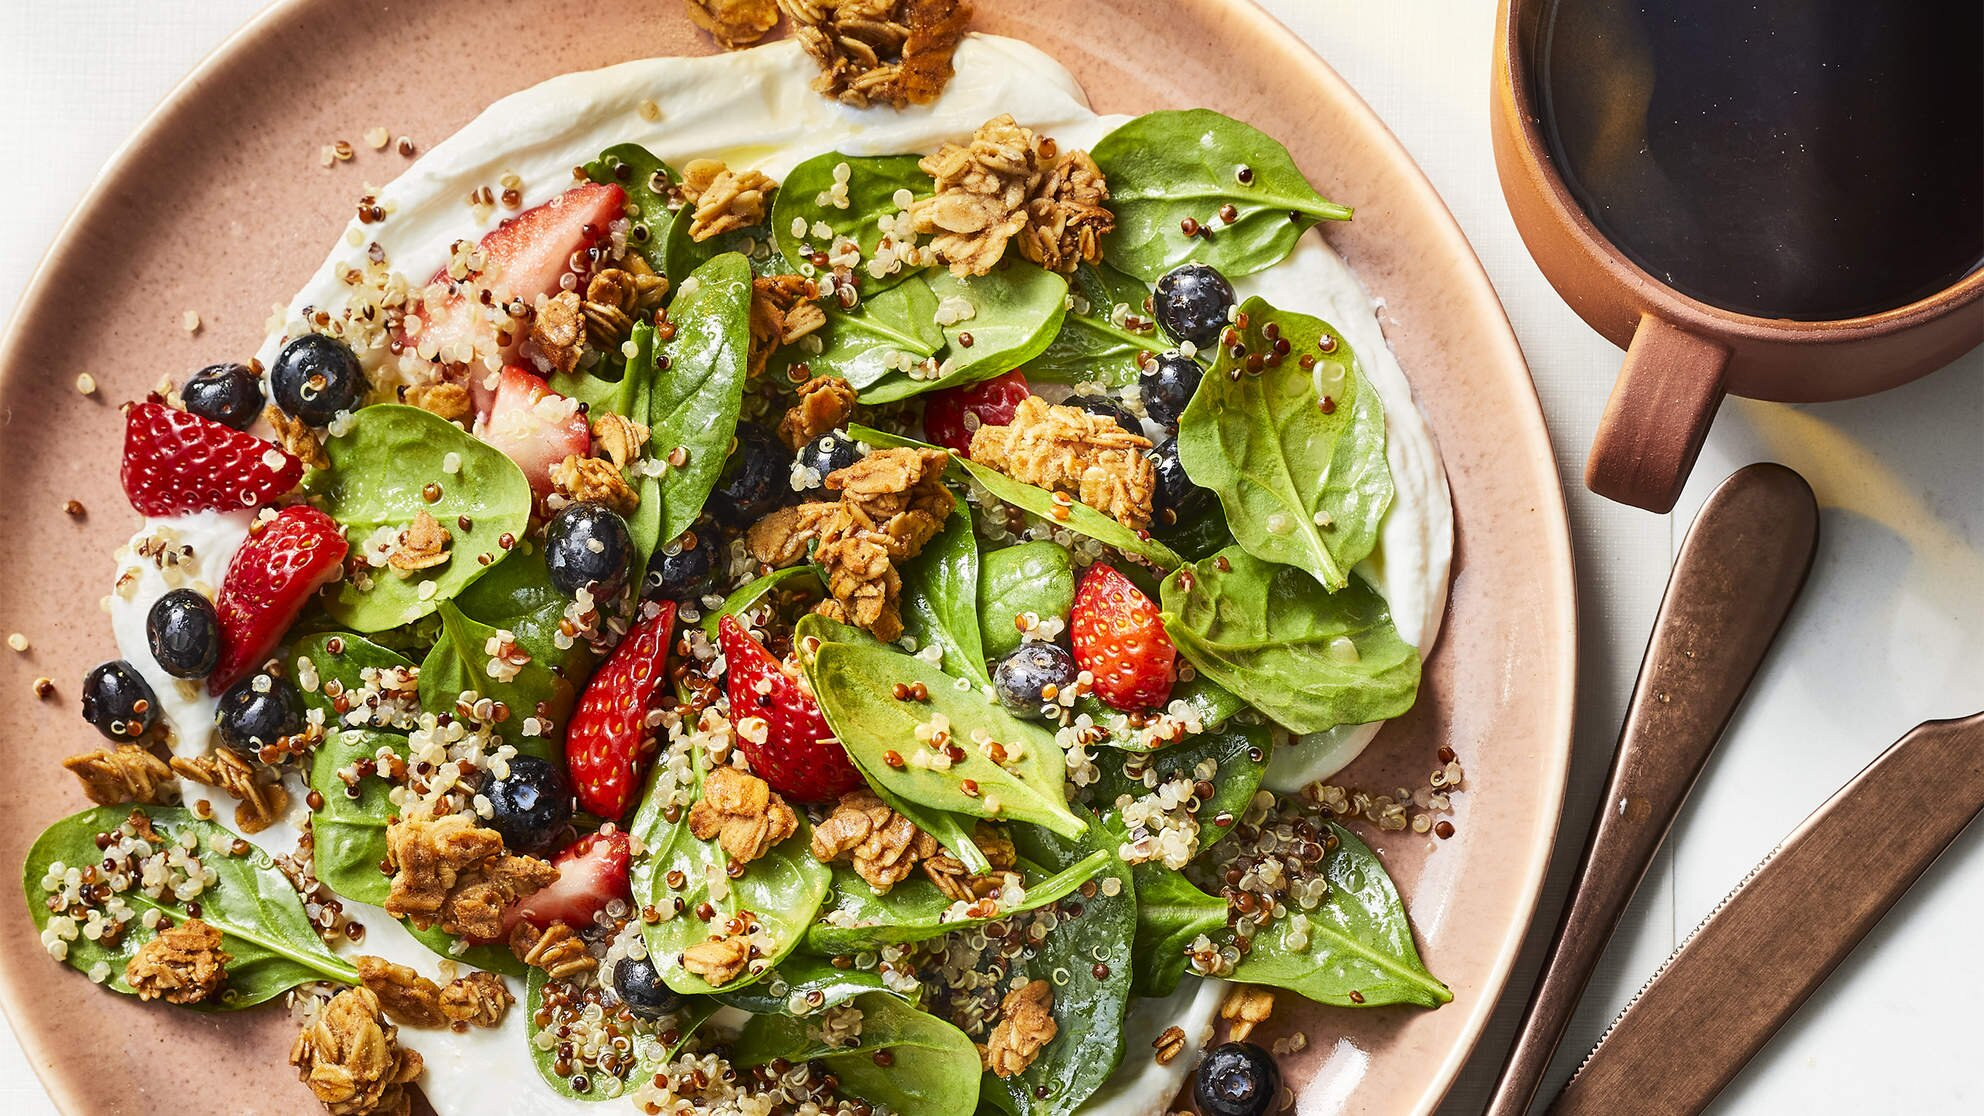 Photo of How To Make Spinach-Quinoa Breakfast Salad With Berries And Granola